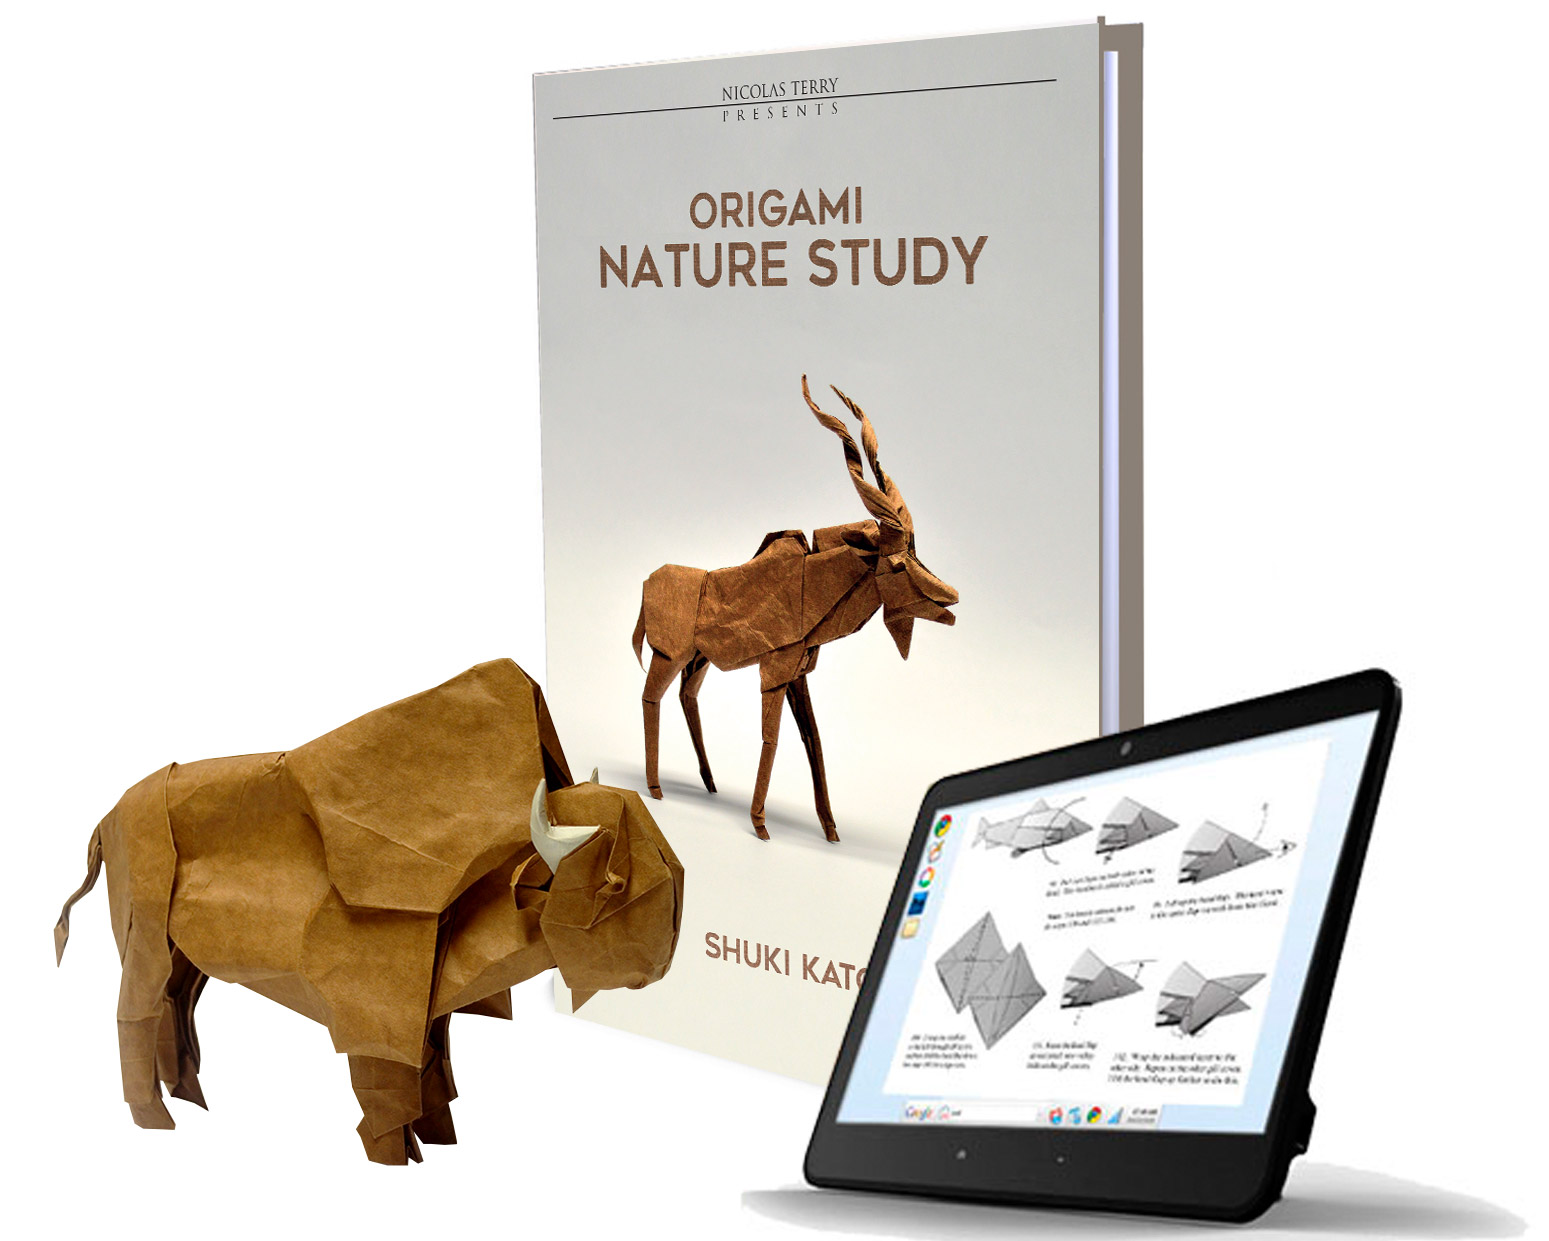 9 Origami Nature Study By Shuki Kato E Book